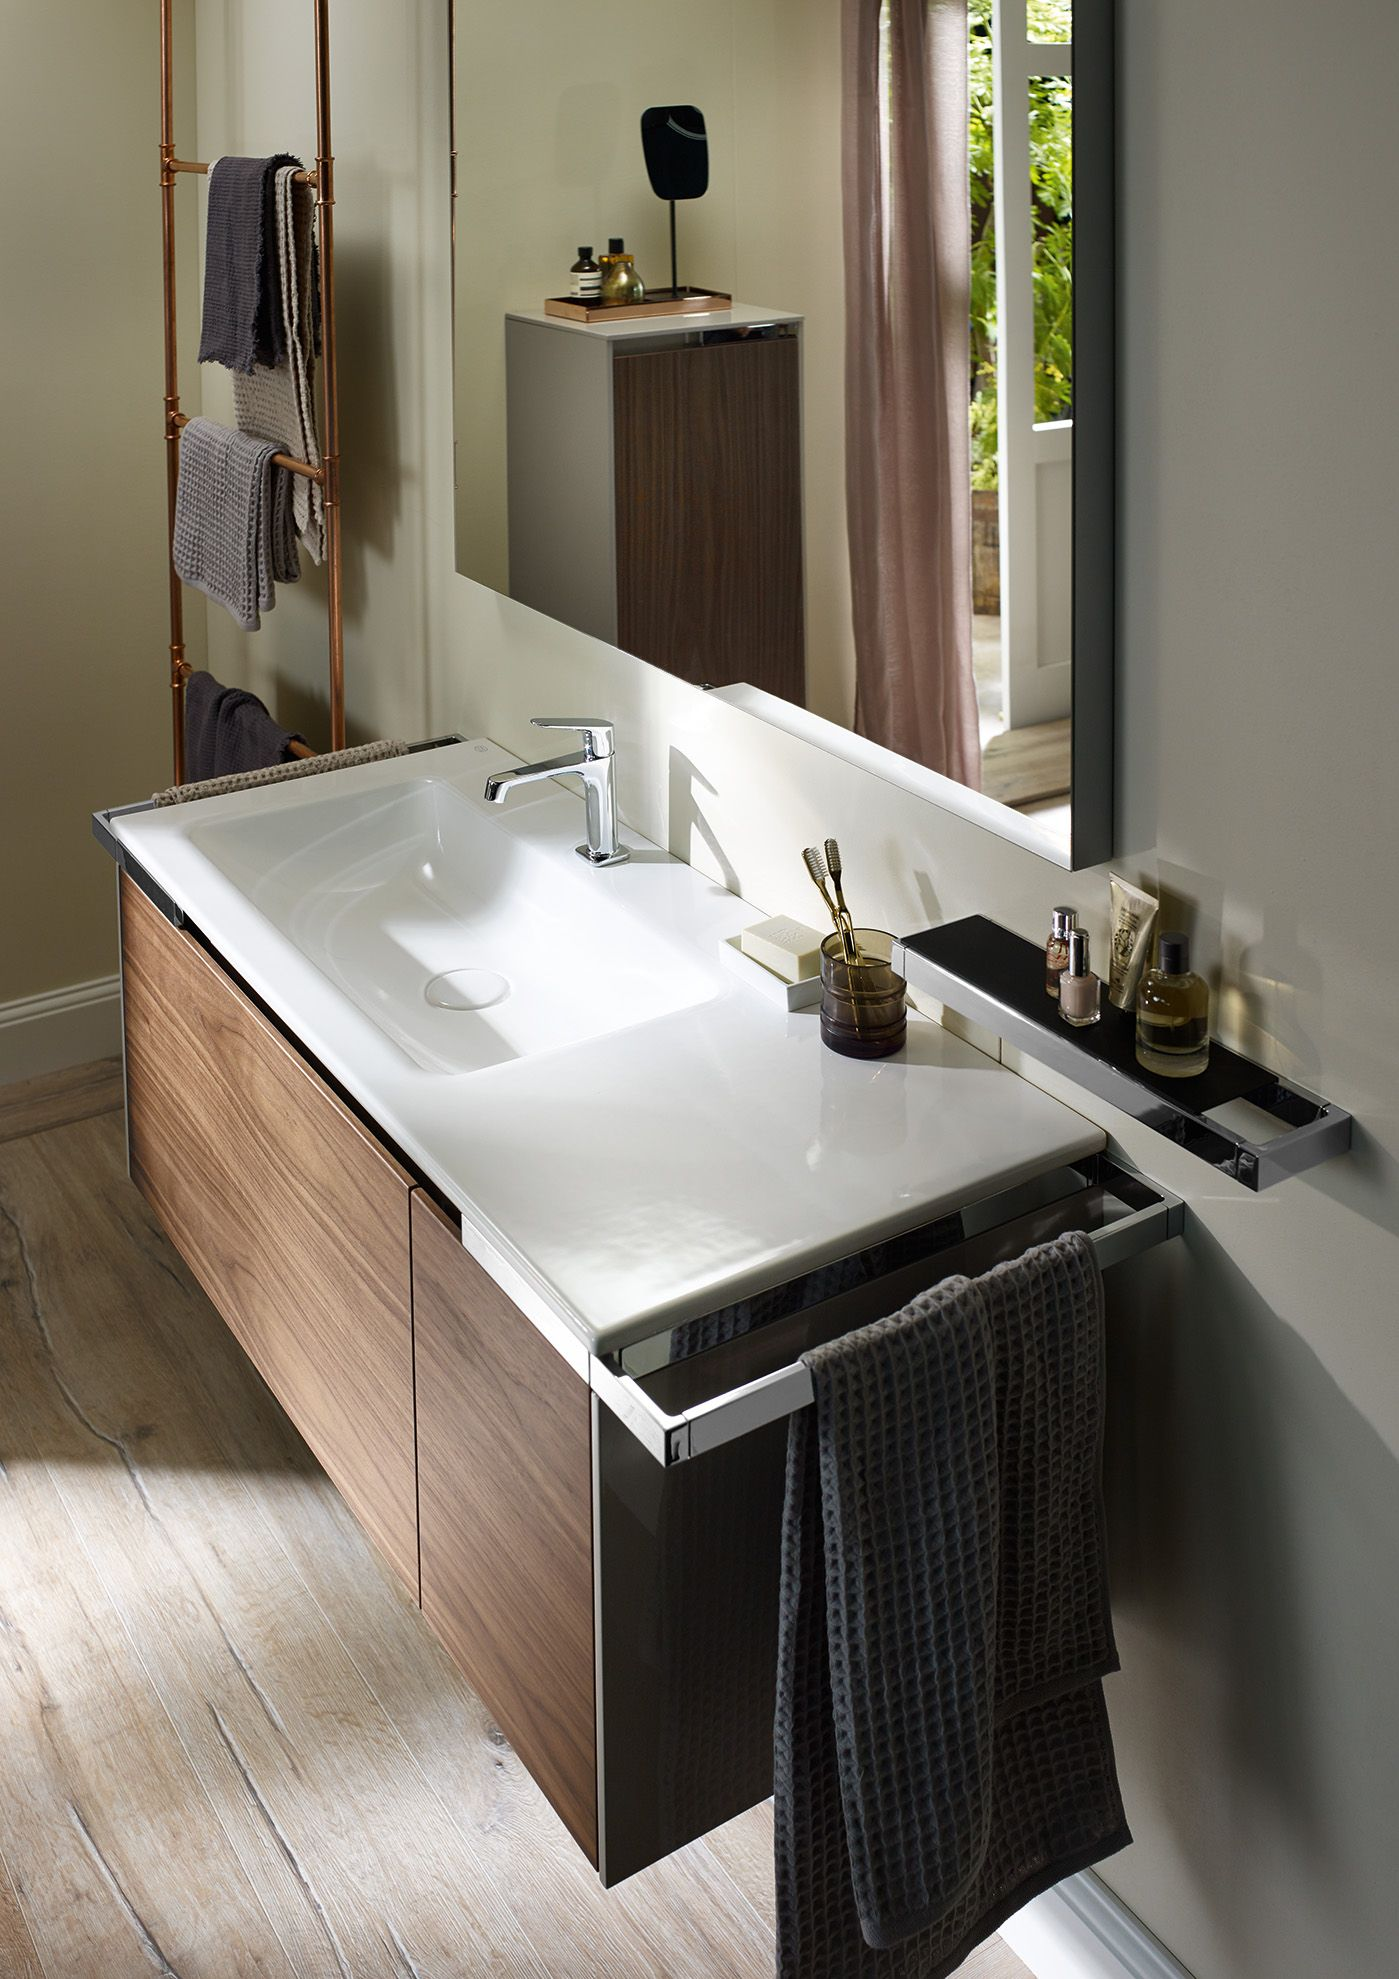 burgbad yso thanks to its asymmetric shape this ceramic top burgbad yso thanks to its asymmetric shape this ceramic top vanity unit is a truly miraculous space saver above it the perfect illustration of how the